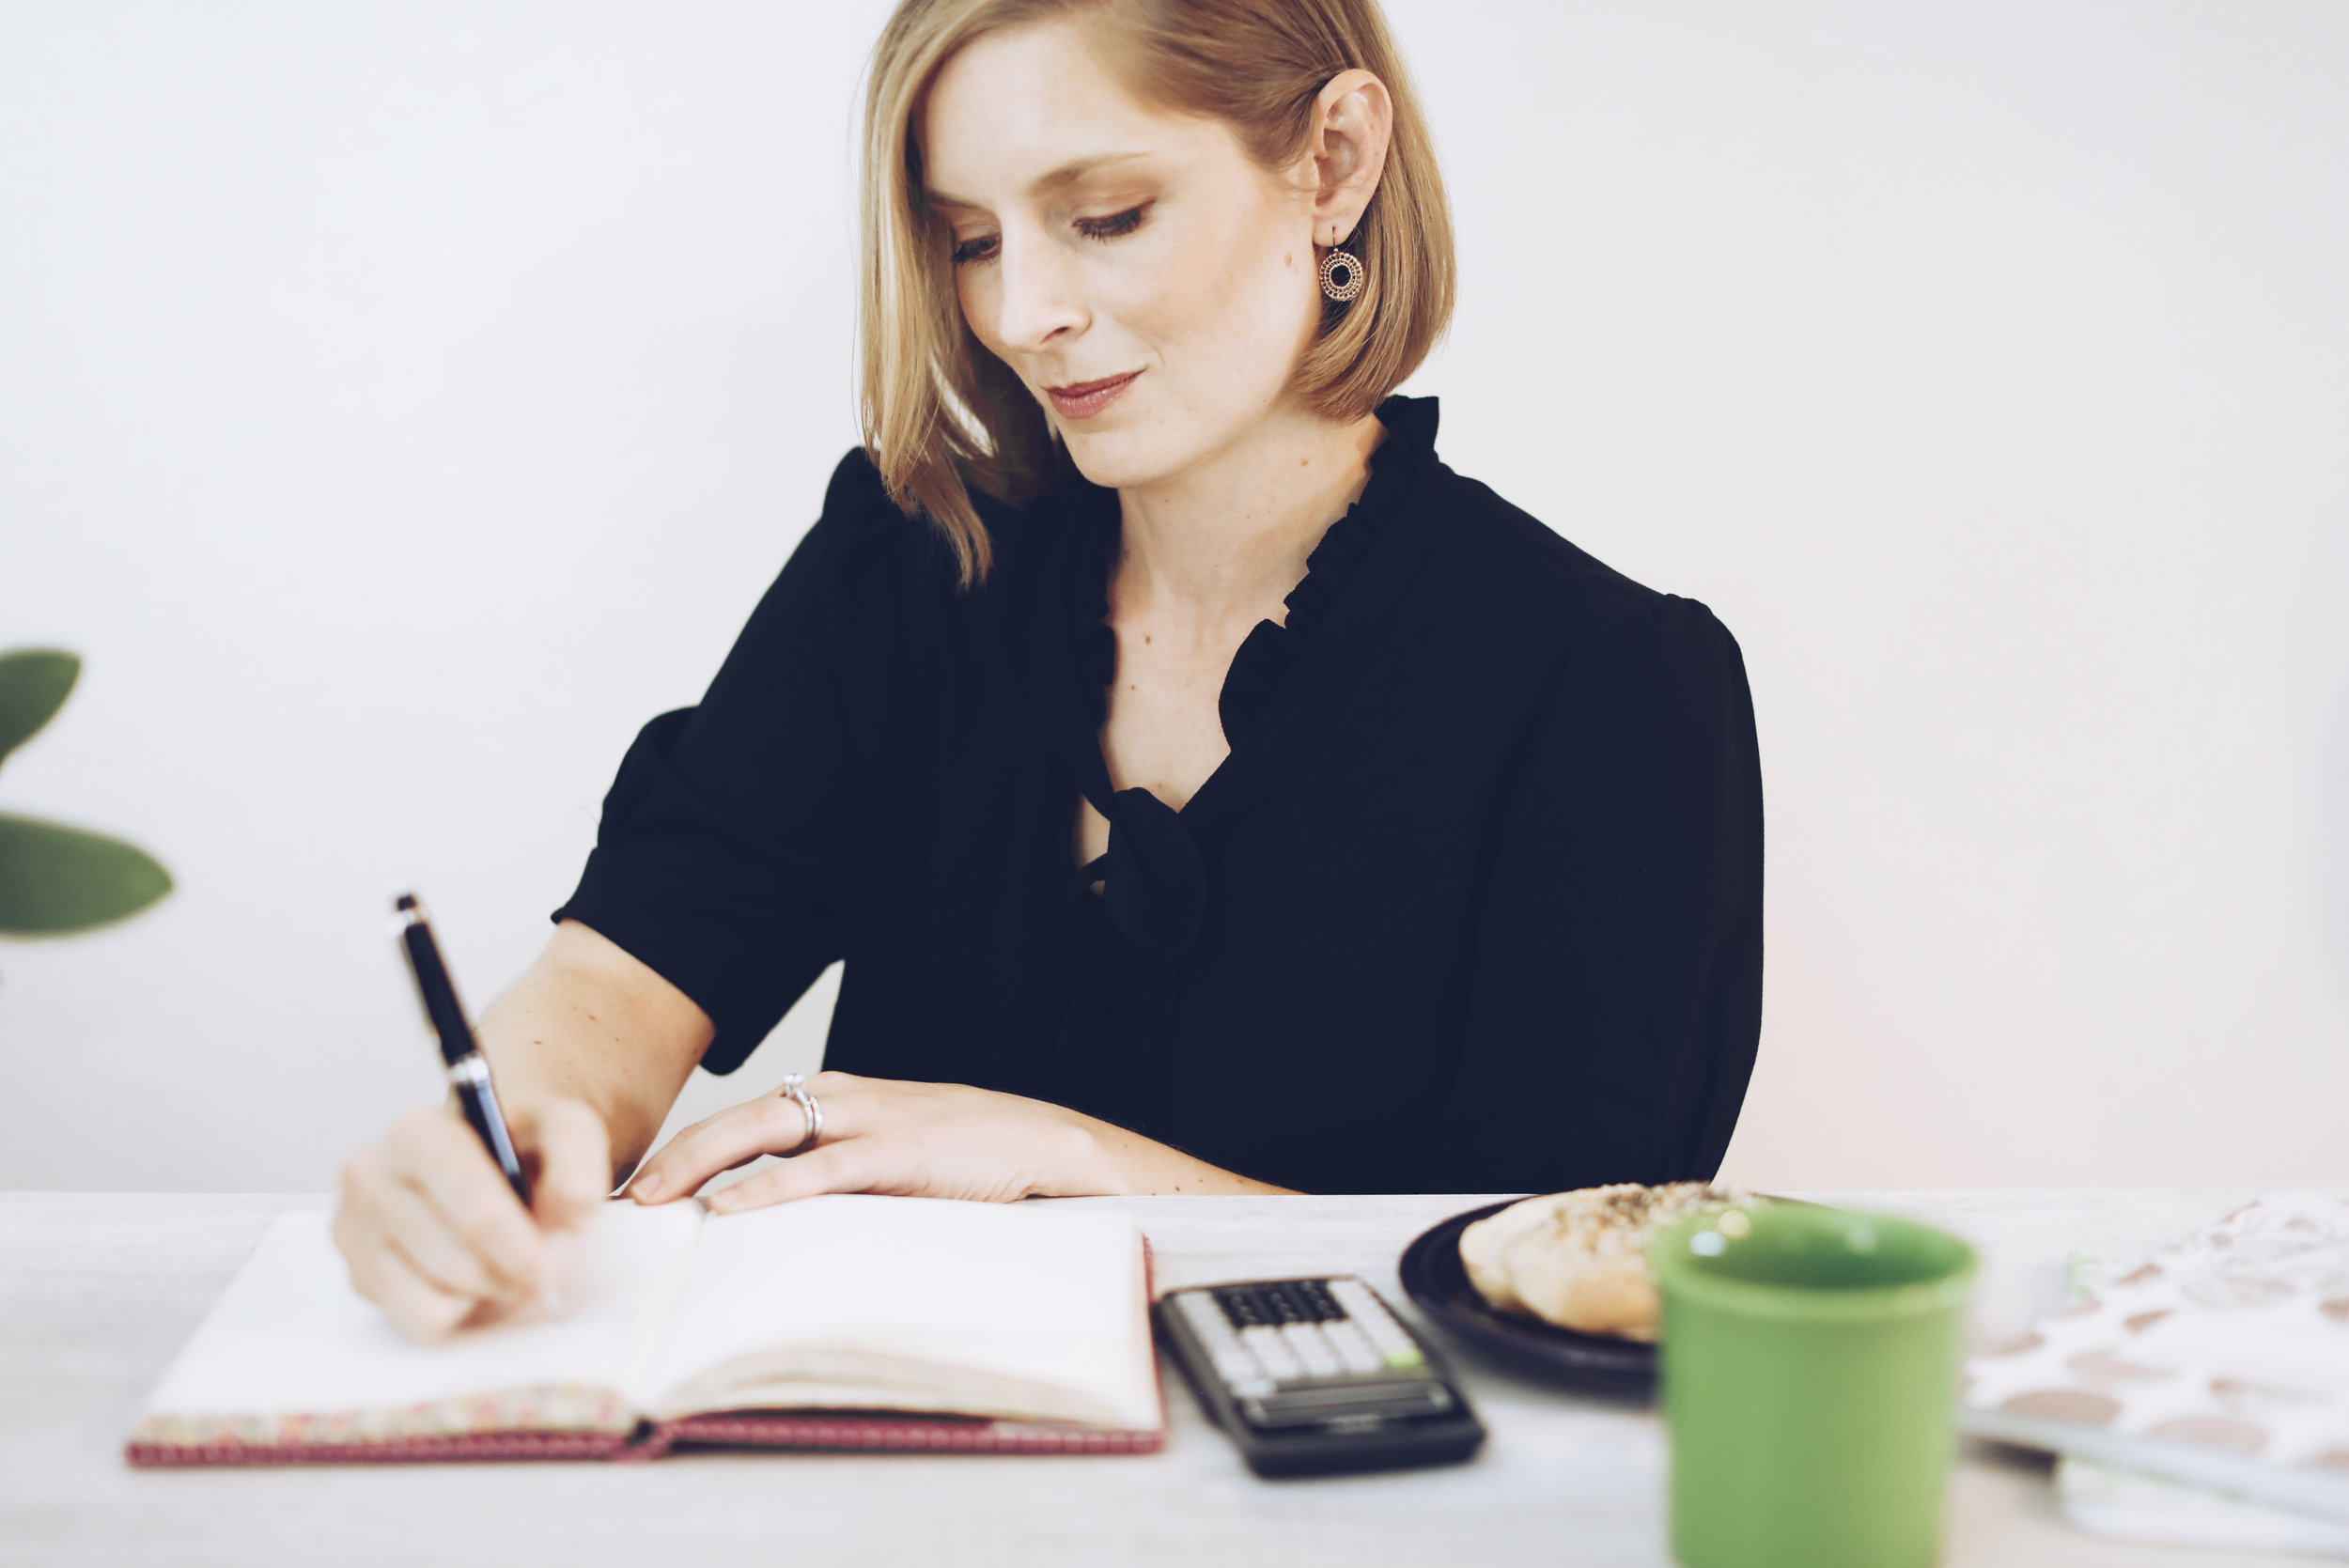 According to CNN Money - 30% of women spend more than they earn. YOU DON'T HAVE TO BE ONE OF THEM. You can become a thoughtful spender and a savvy saver with a plan that allows you to enjoy your paycheck AND your lifestyle.